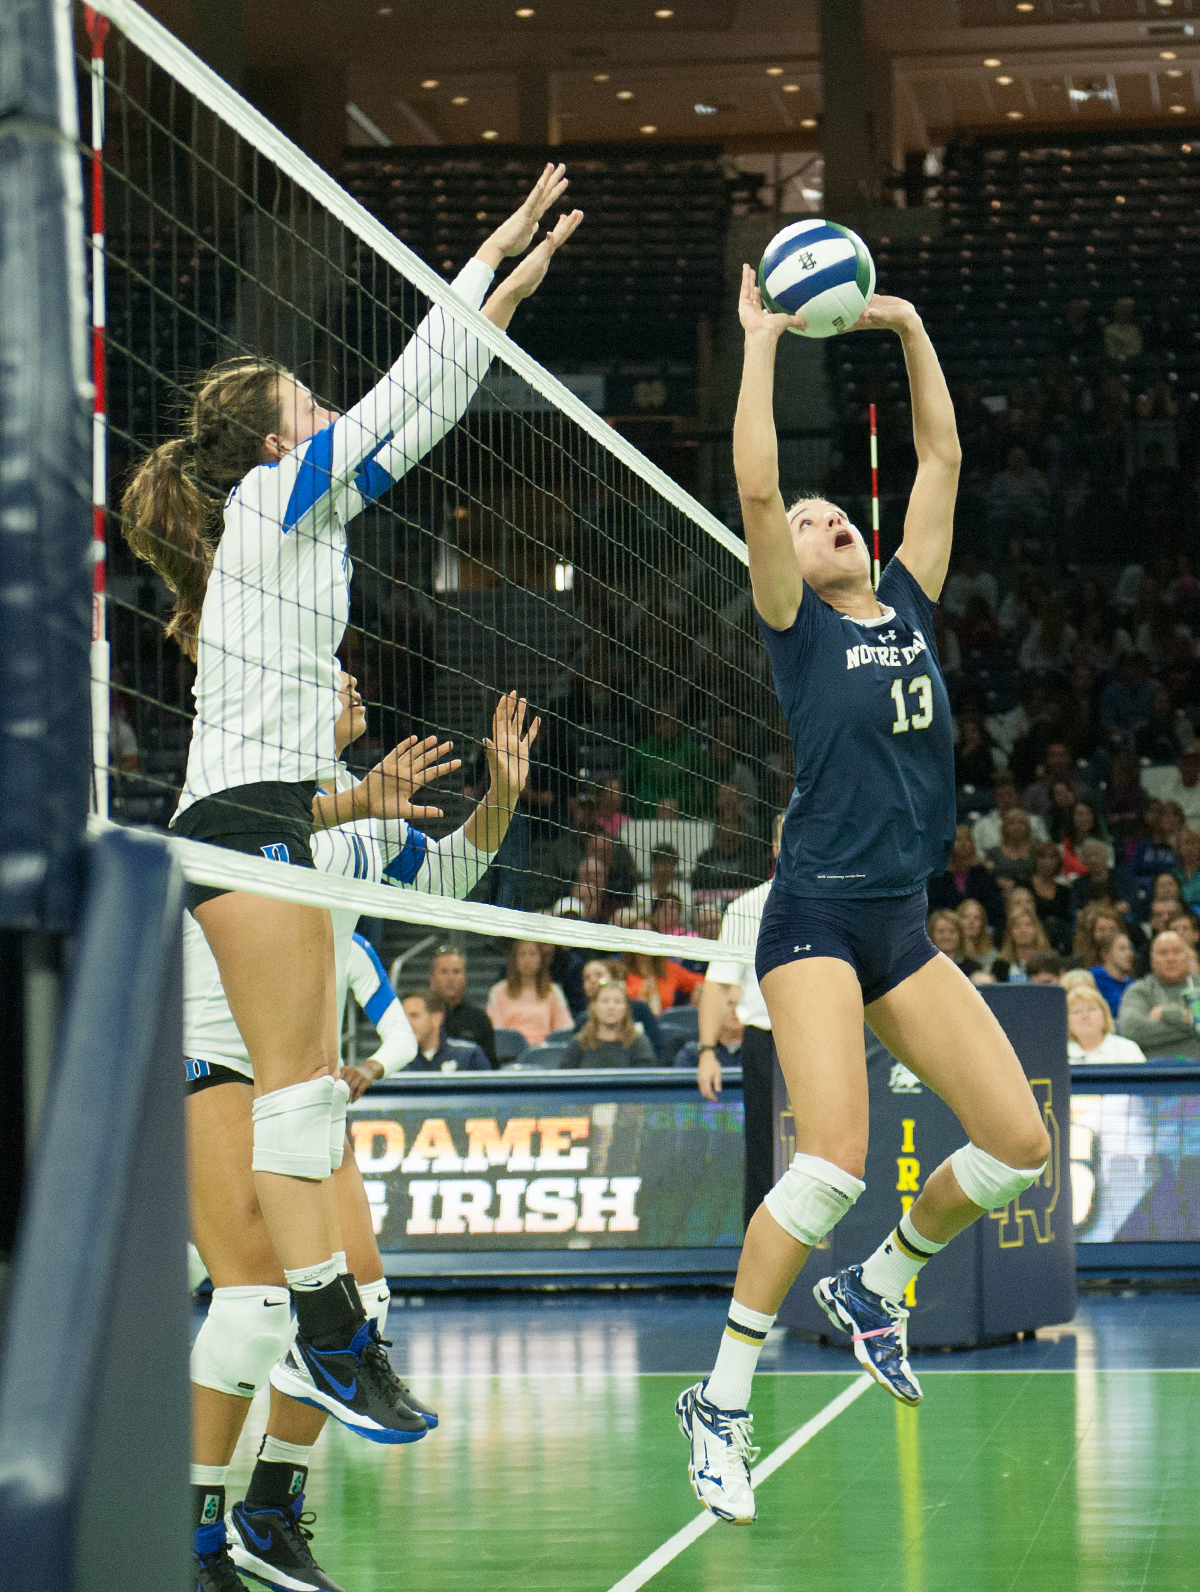 Irish junior setter Hanna Muzzonigro sets the ball to a teammate in Notre Dame's 3-1 loss to Duke on Oct. 5 at Purcell Pavilion.